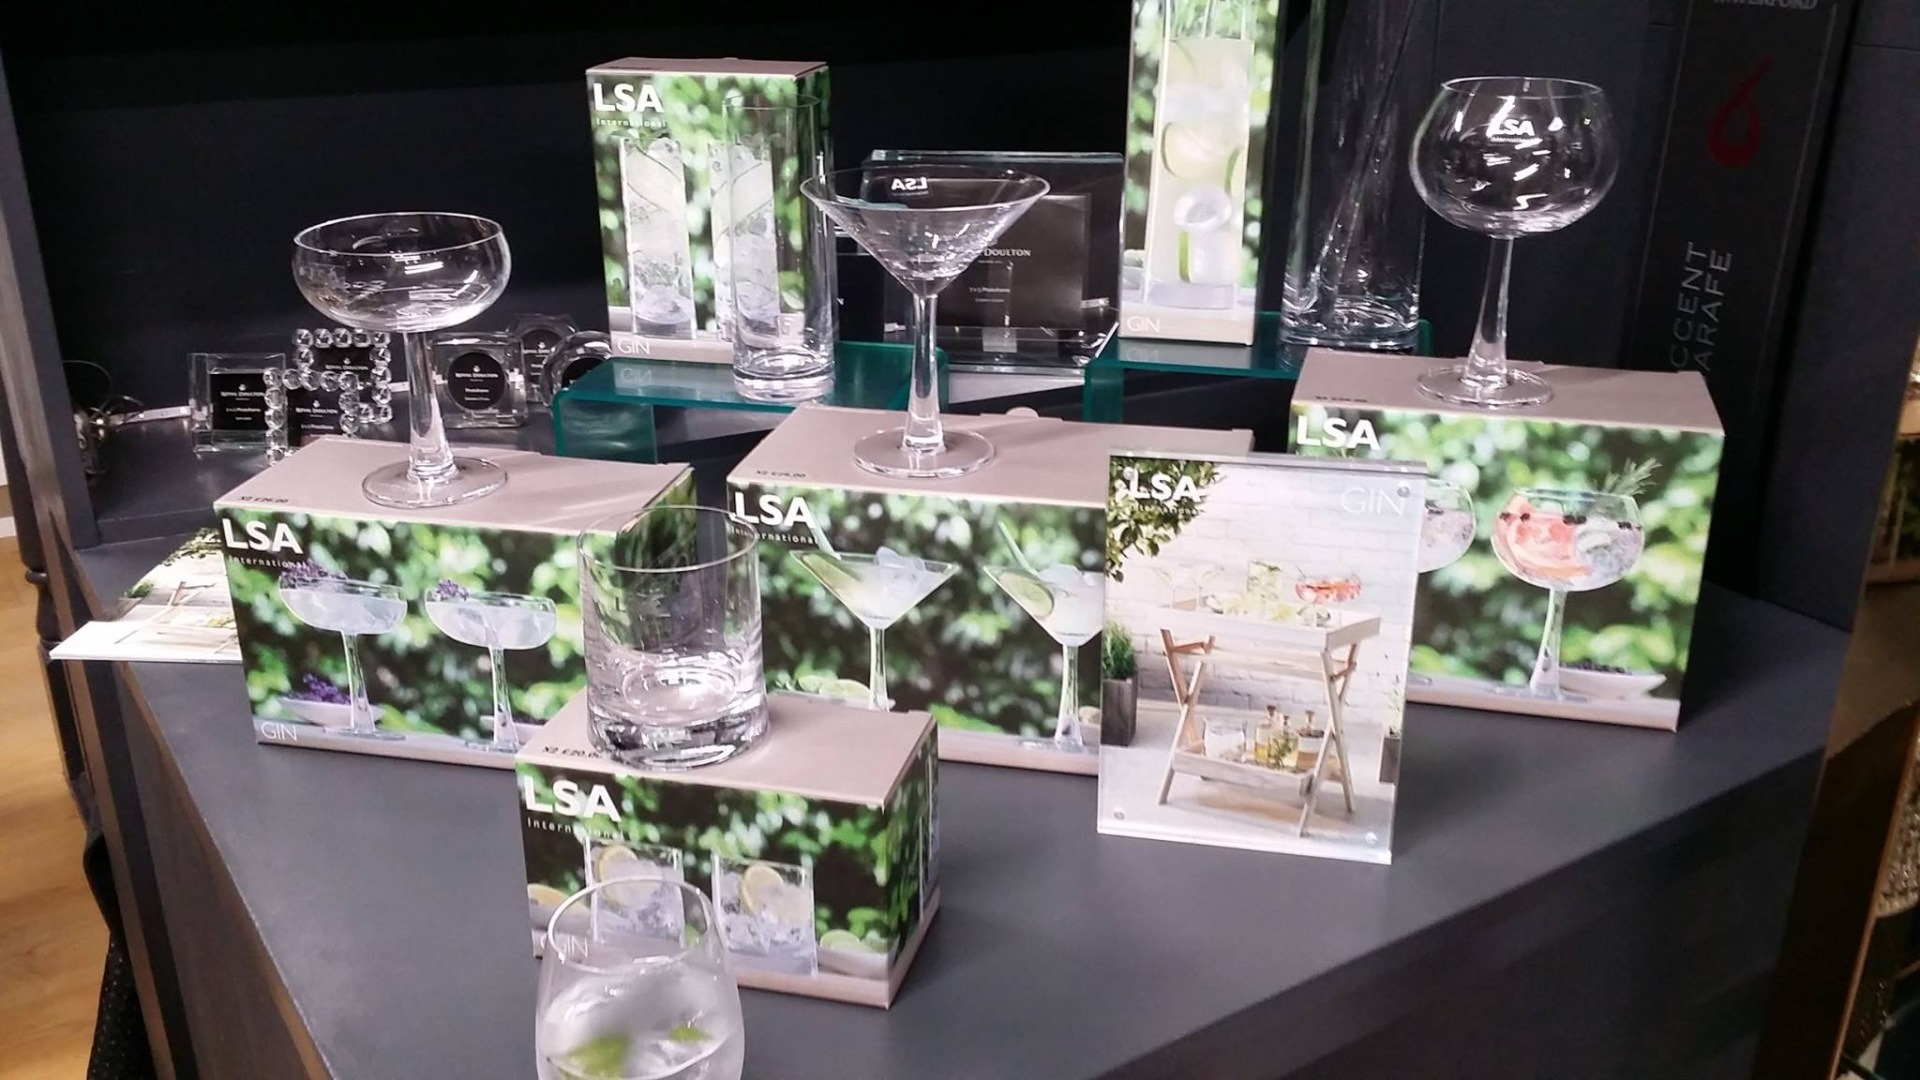 Gin glassware launch event